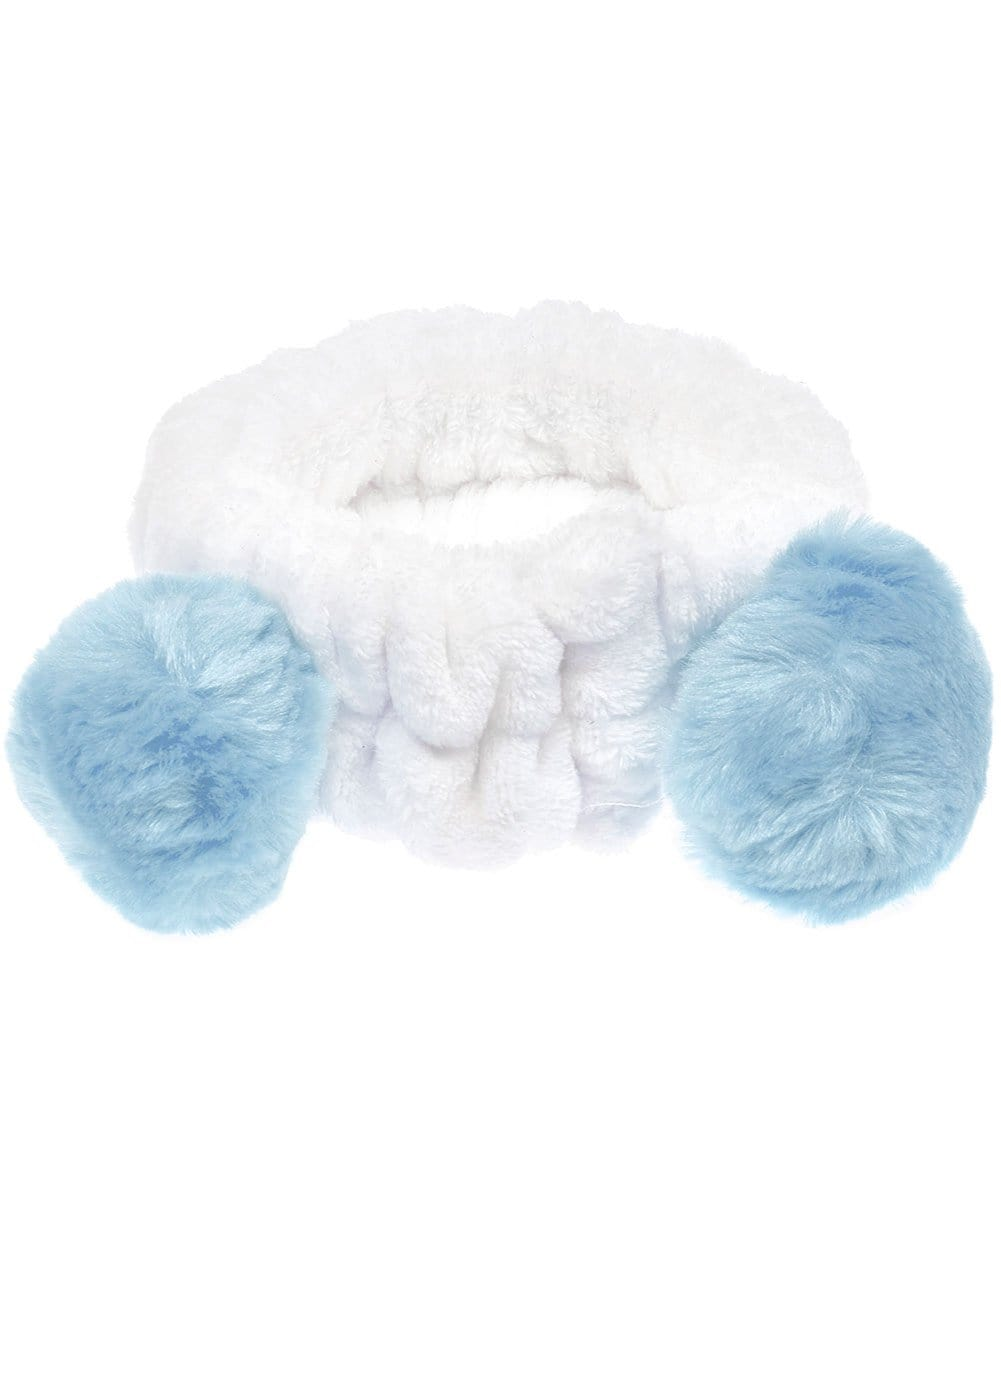 Light Blue Wash Headband with Ears